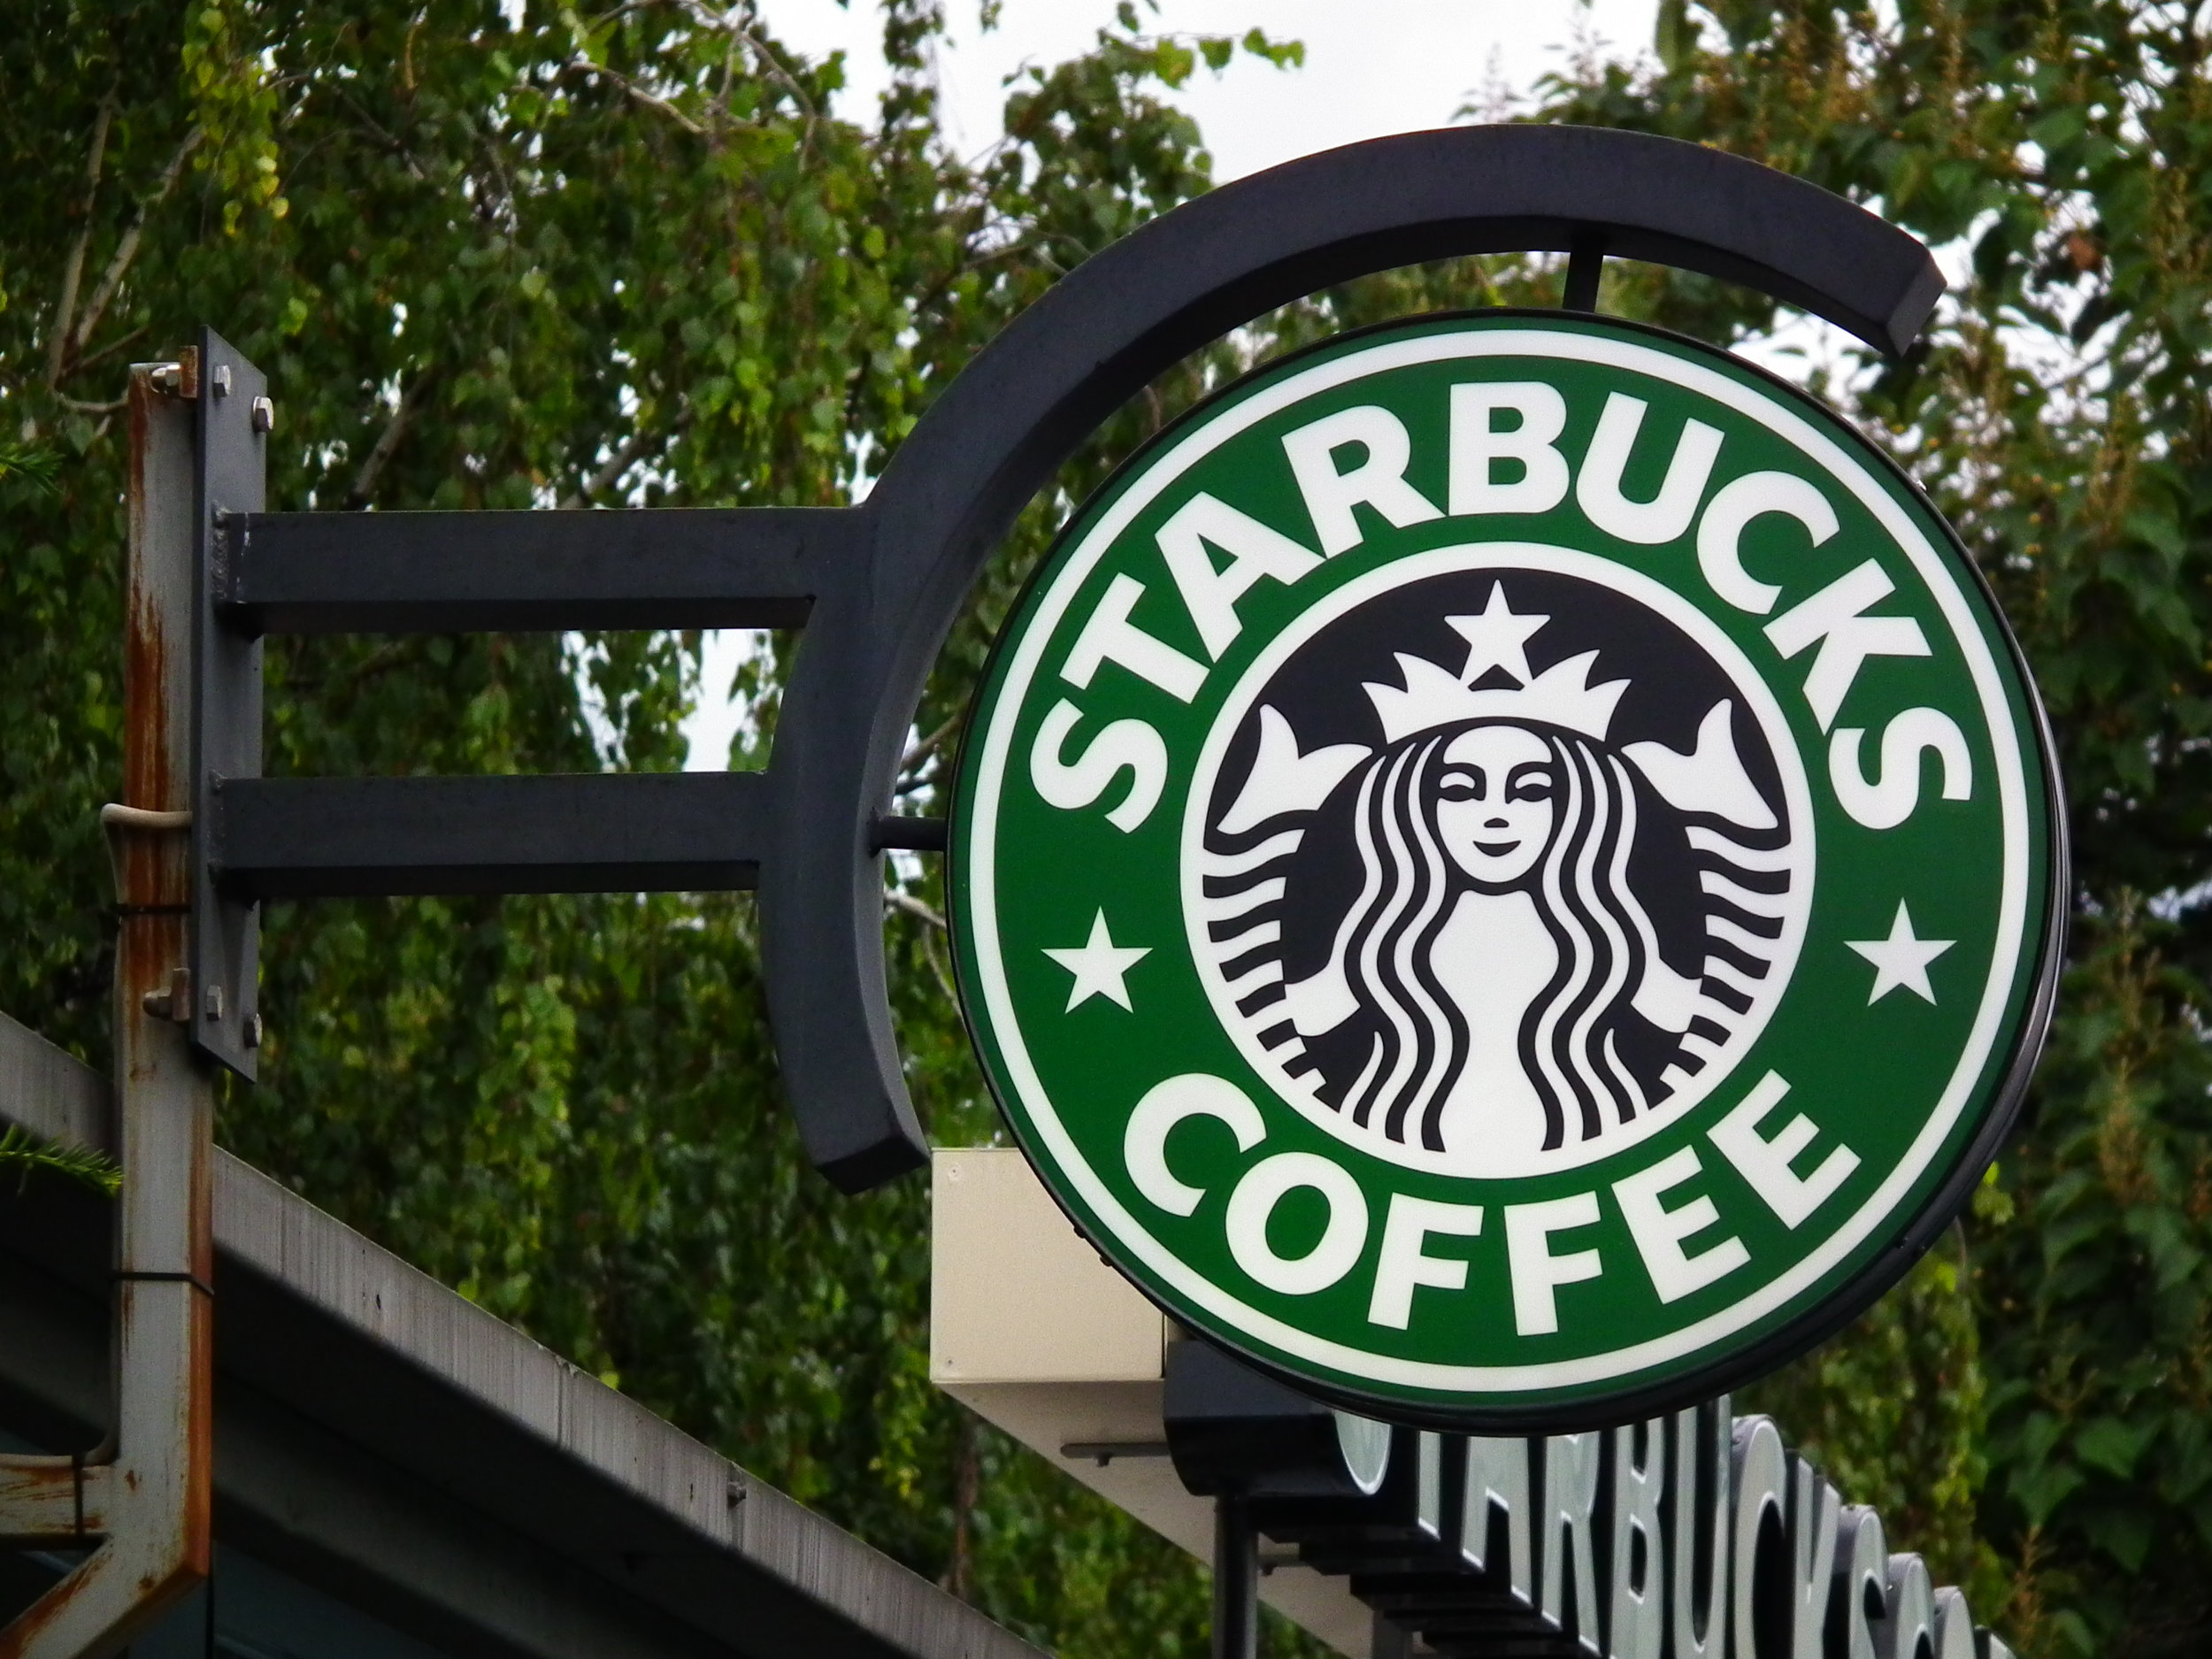 Starbucks_Coffee_Mannheim_August_2012.jpg